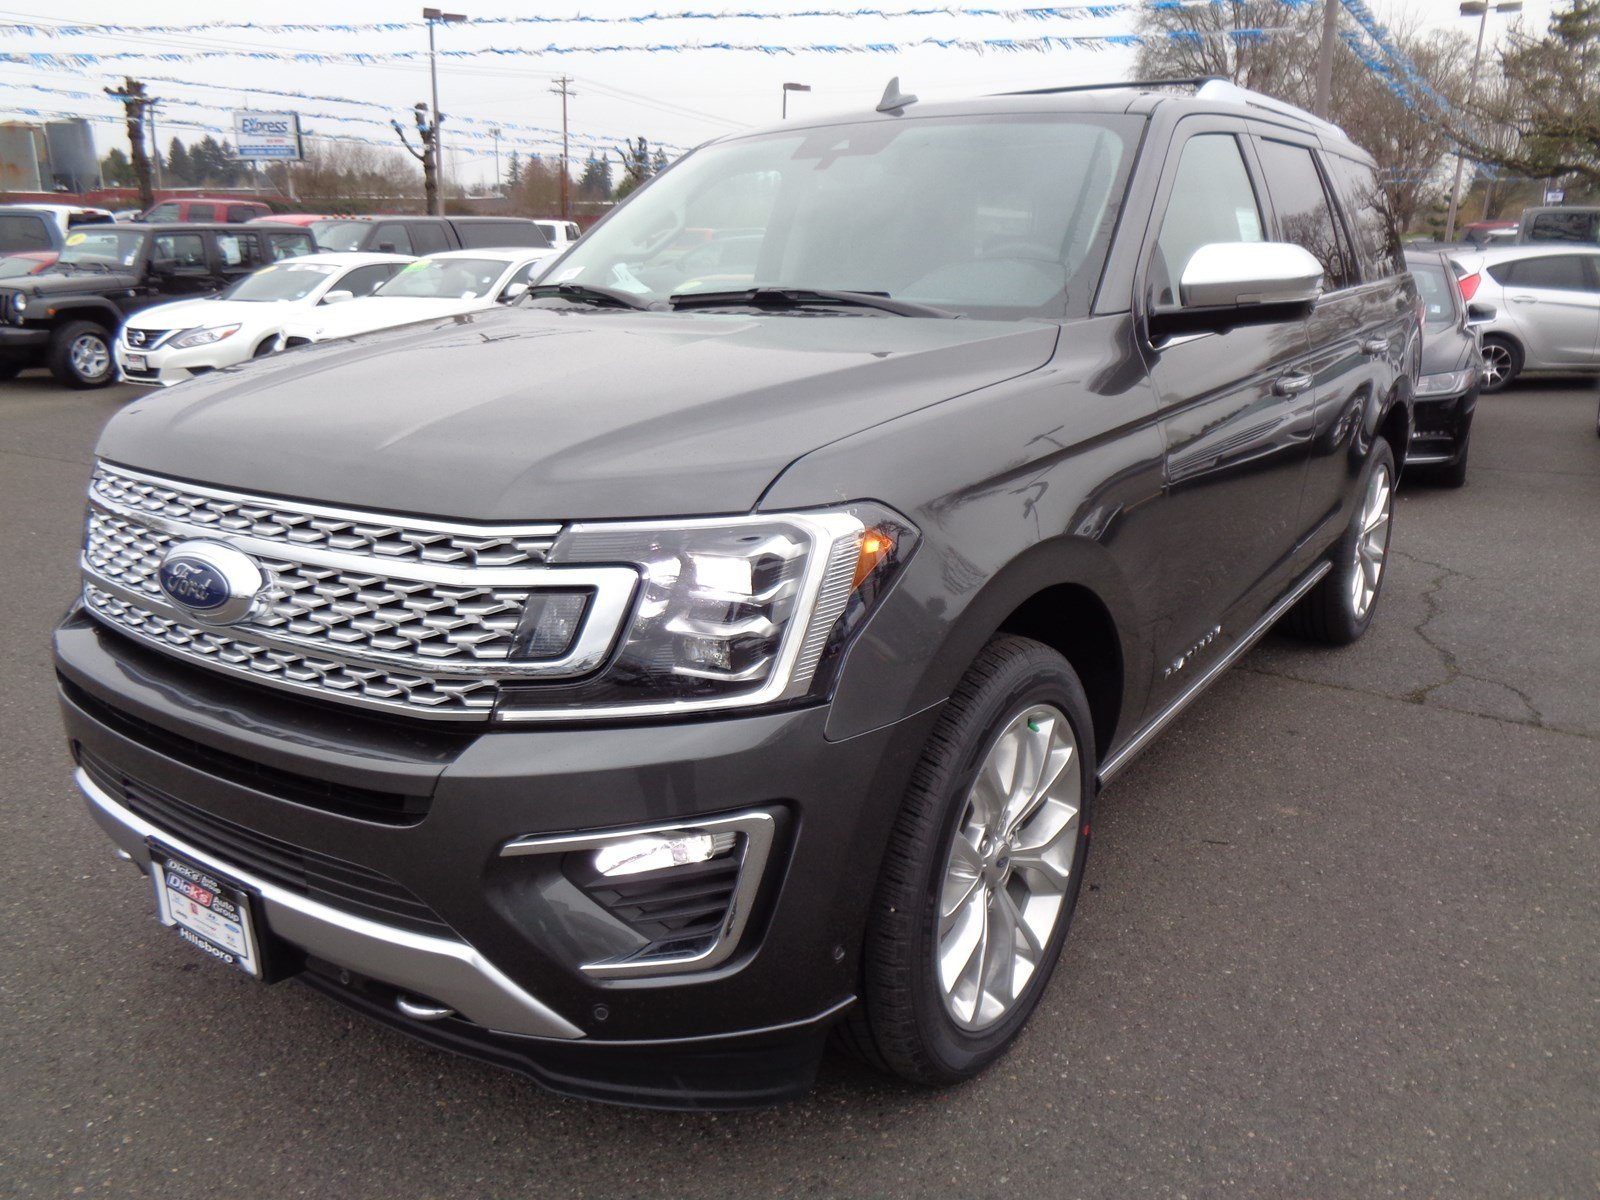 New 2019 Ford Expedition PLATINUM 4X4